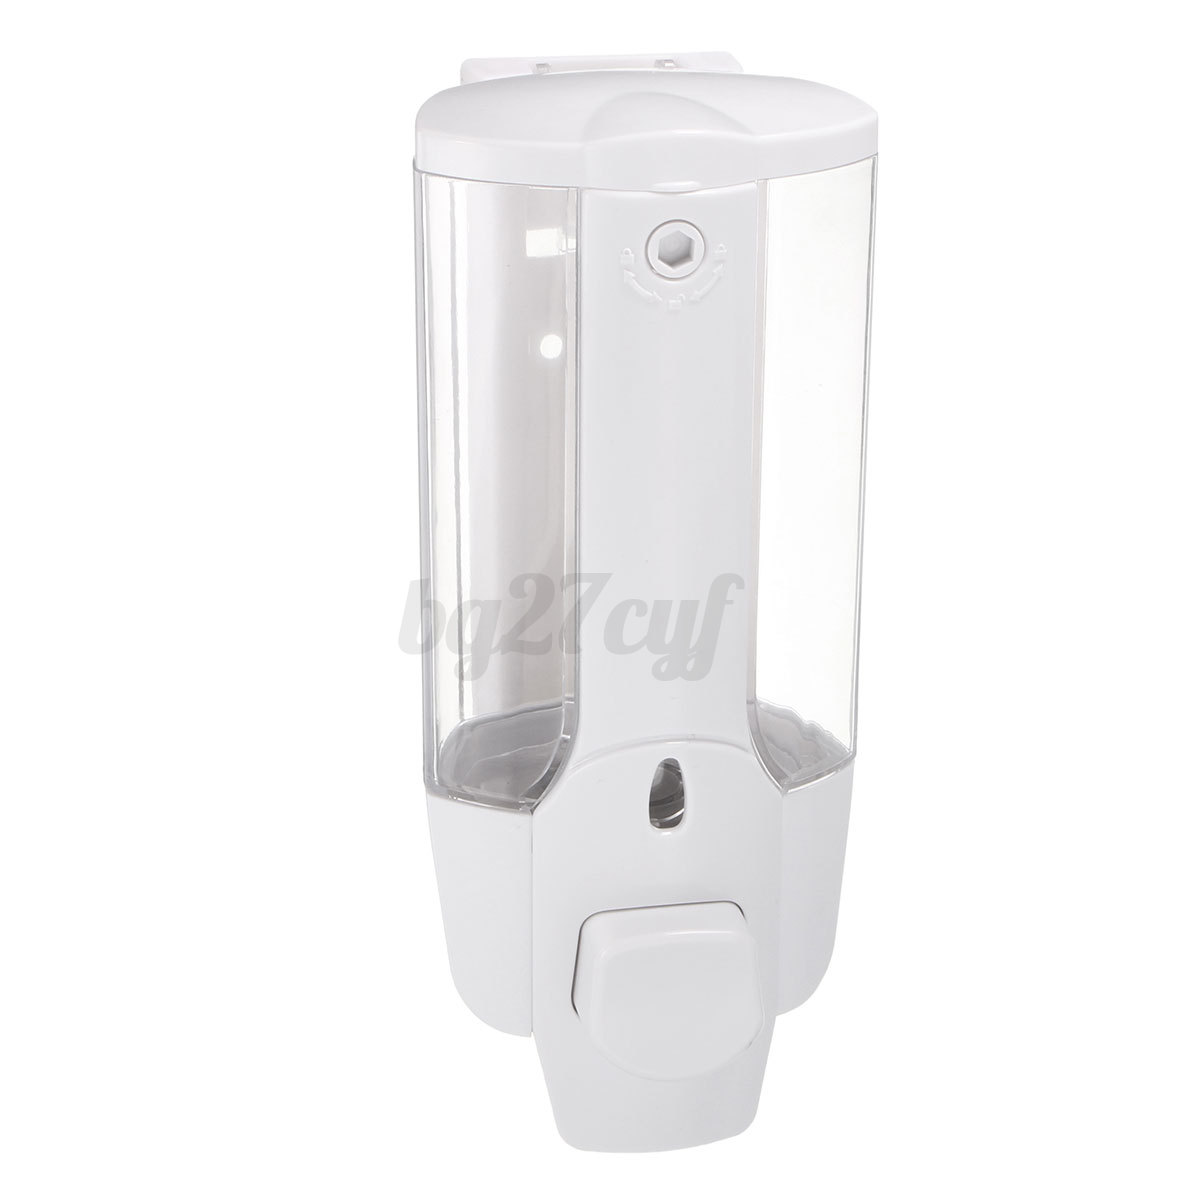 Soap And Shampoo Dispensers For Showers Wall Mounted Shampoo Soap Dispenser Sanitizer Bathroom